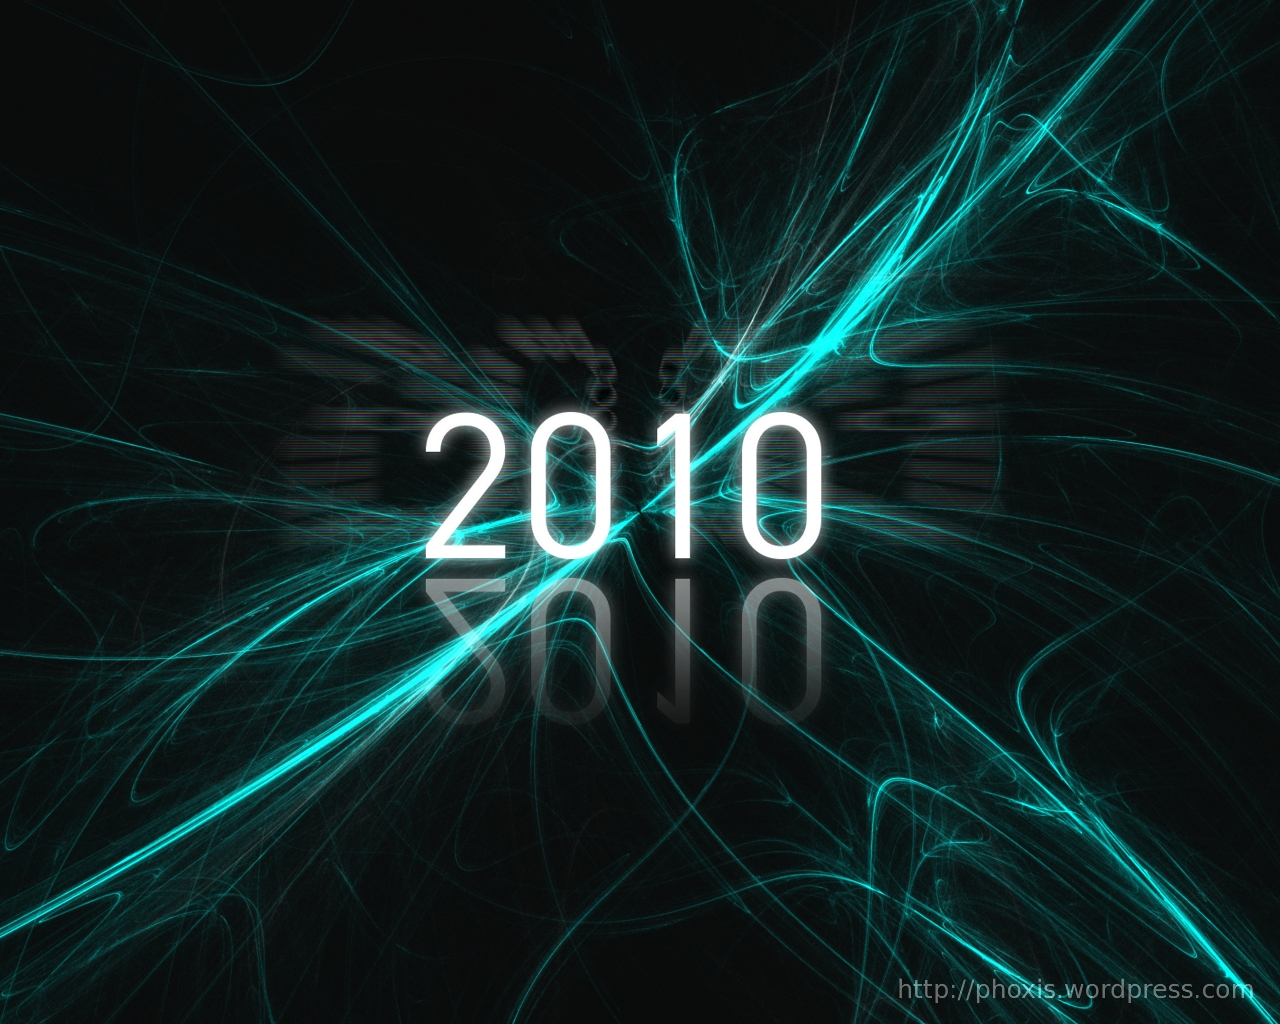 Some 3d Wallpapers New Year 2010 Gimp Wallpaper Phoxis